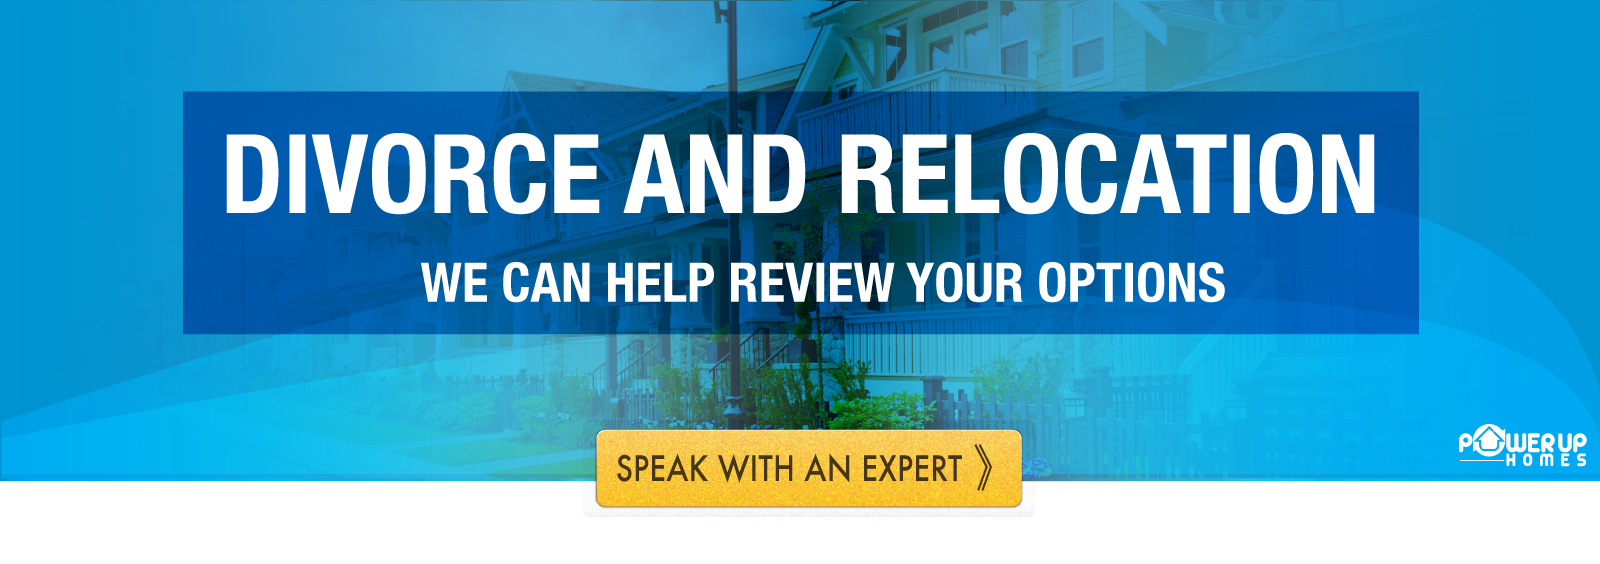 PowerUp Homes – Divorce and Relocation Force The Move